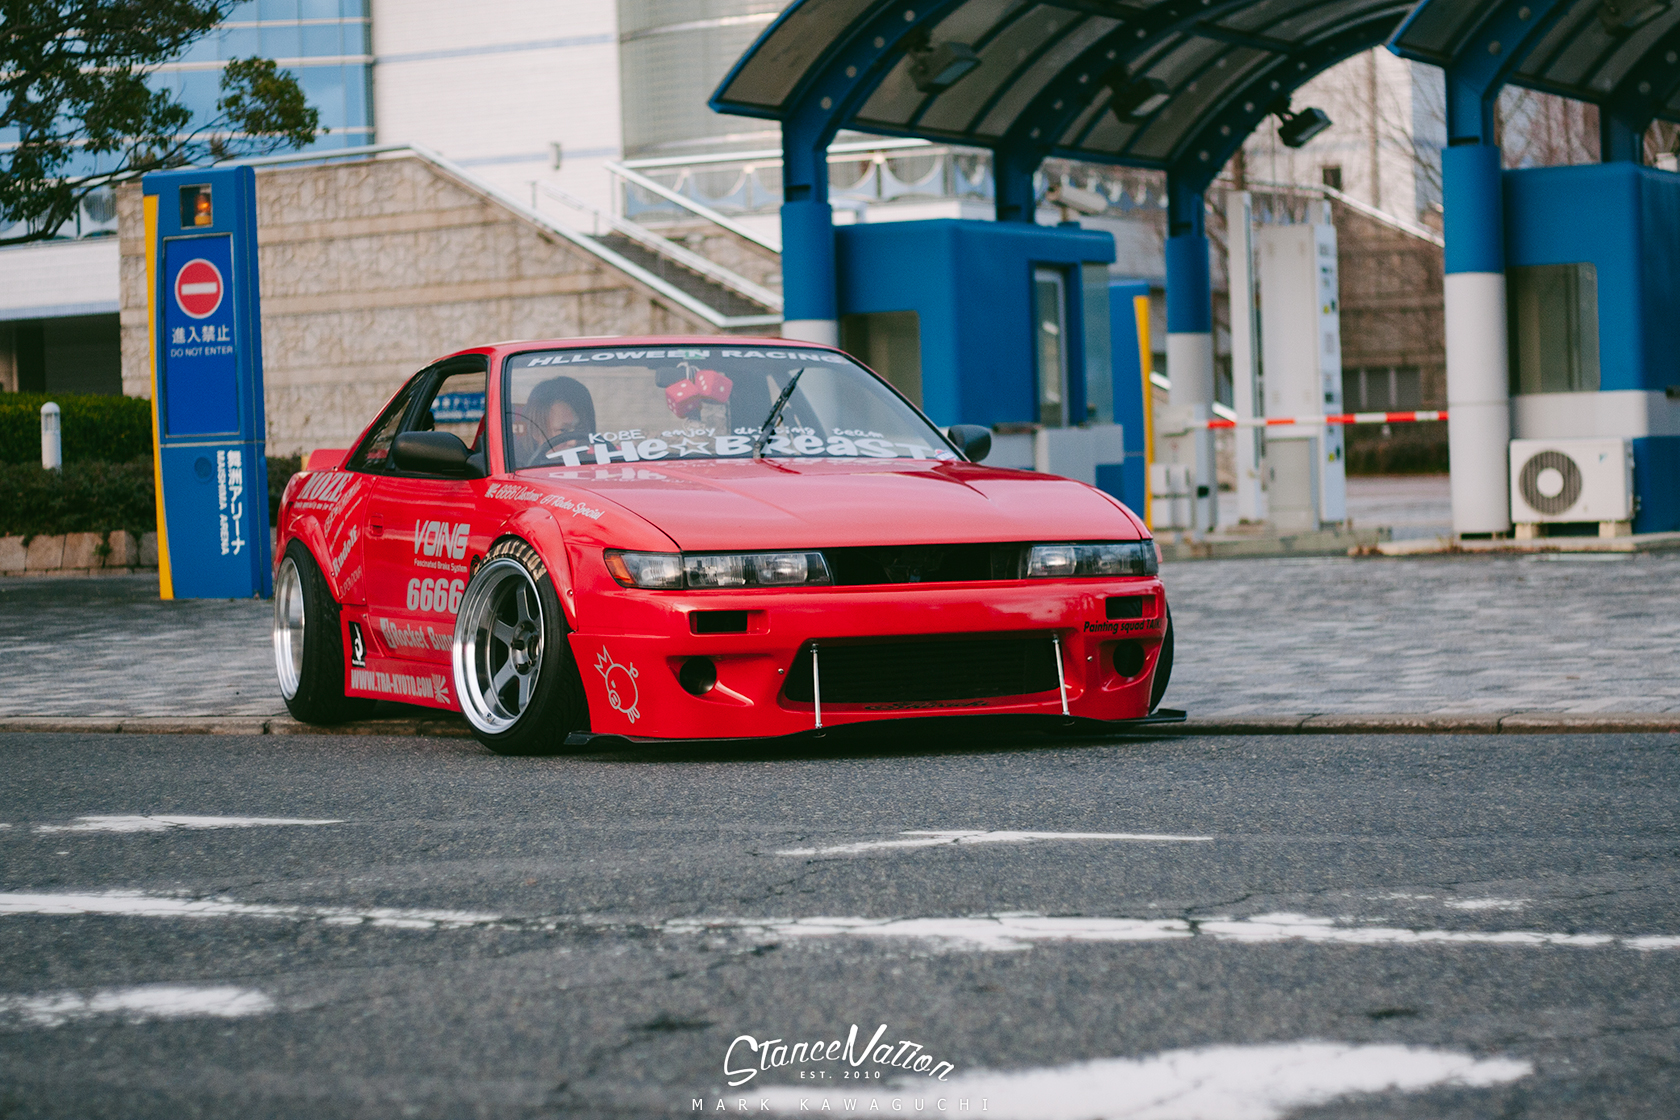 rocket-bunny-nissan-japan-6666-customs-S13-14